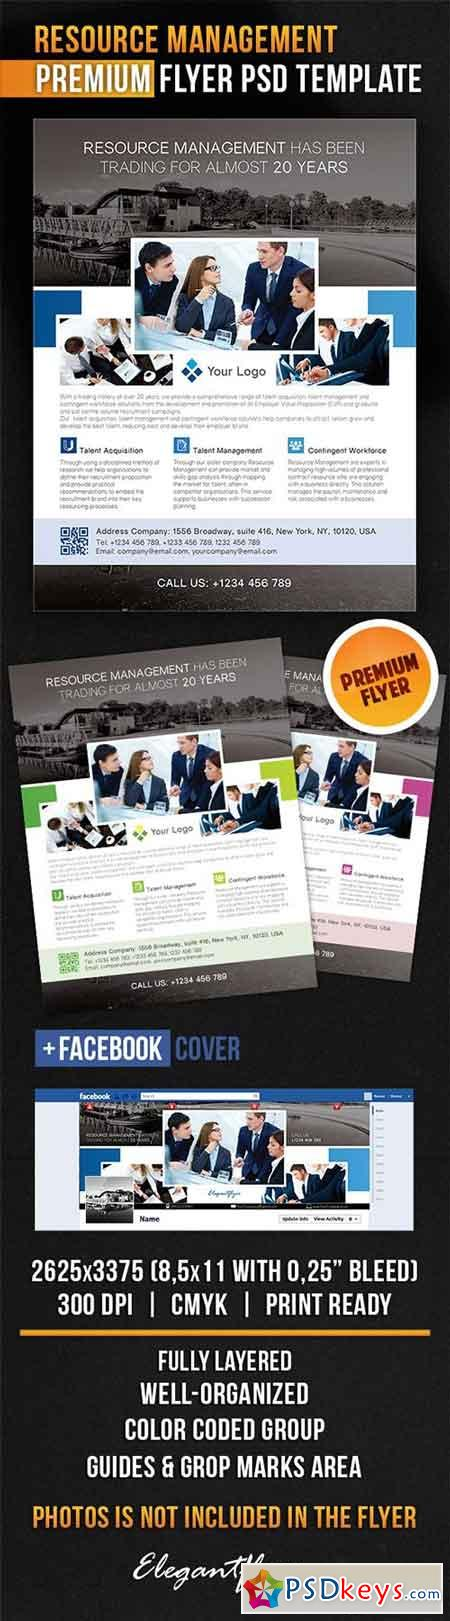 Resource Management Flyer PSD Template + Facebook Cover